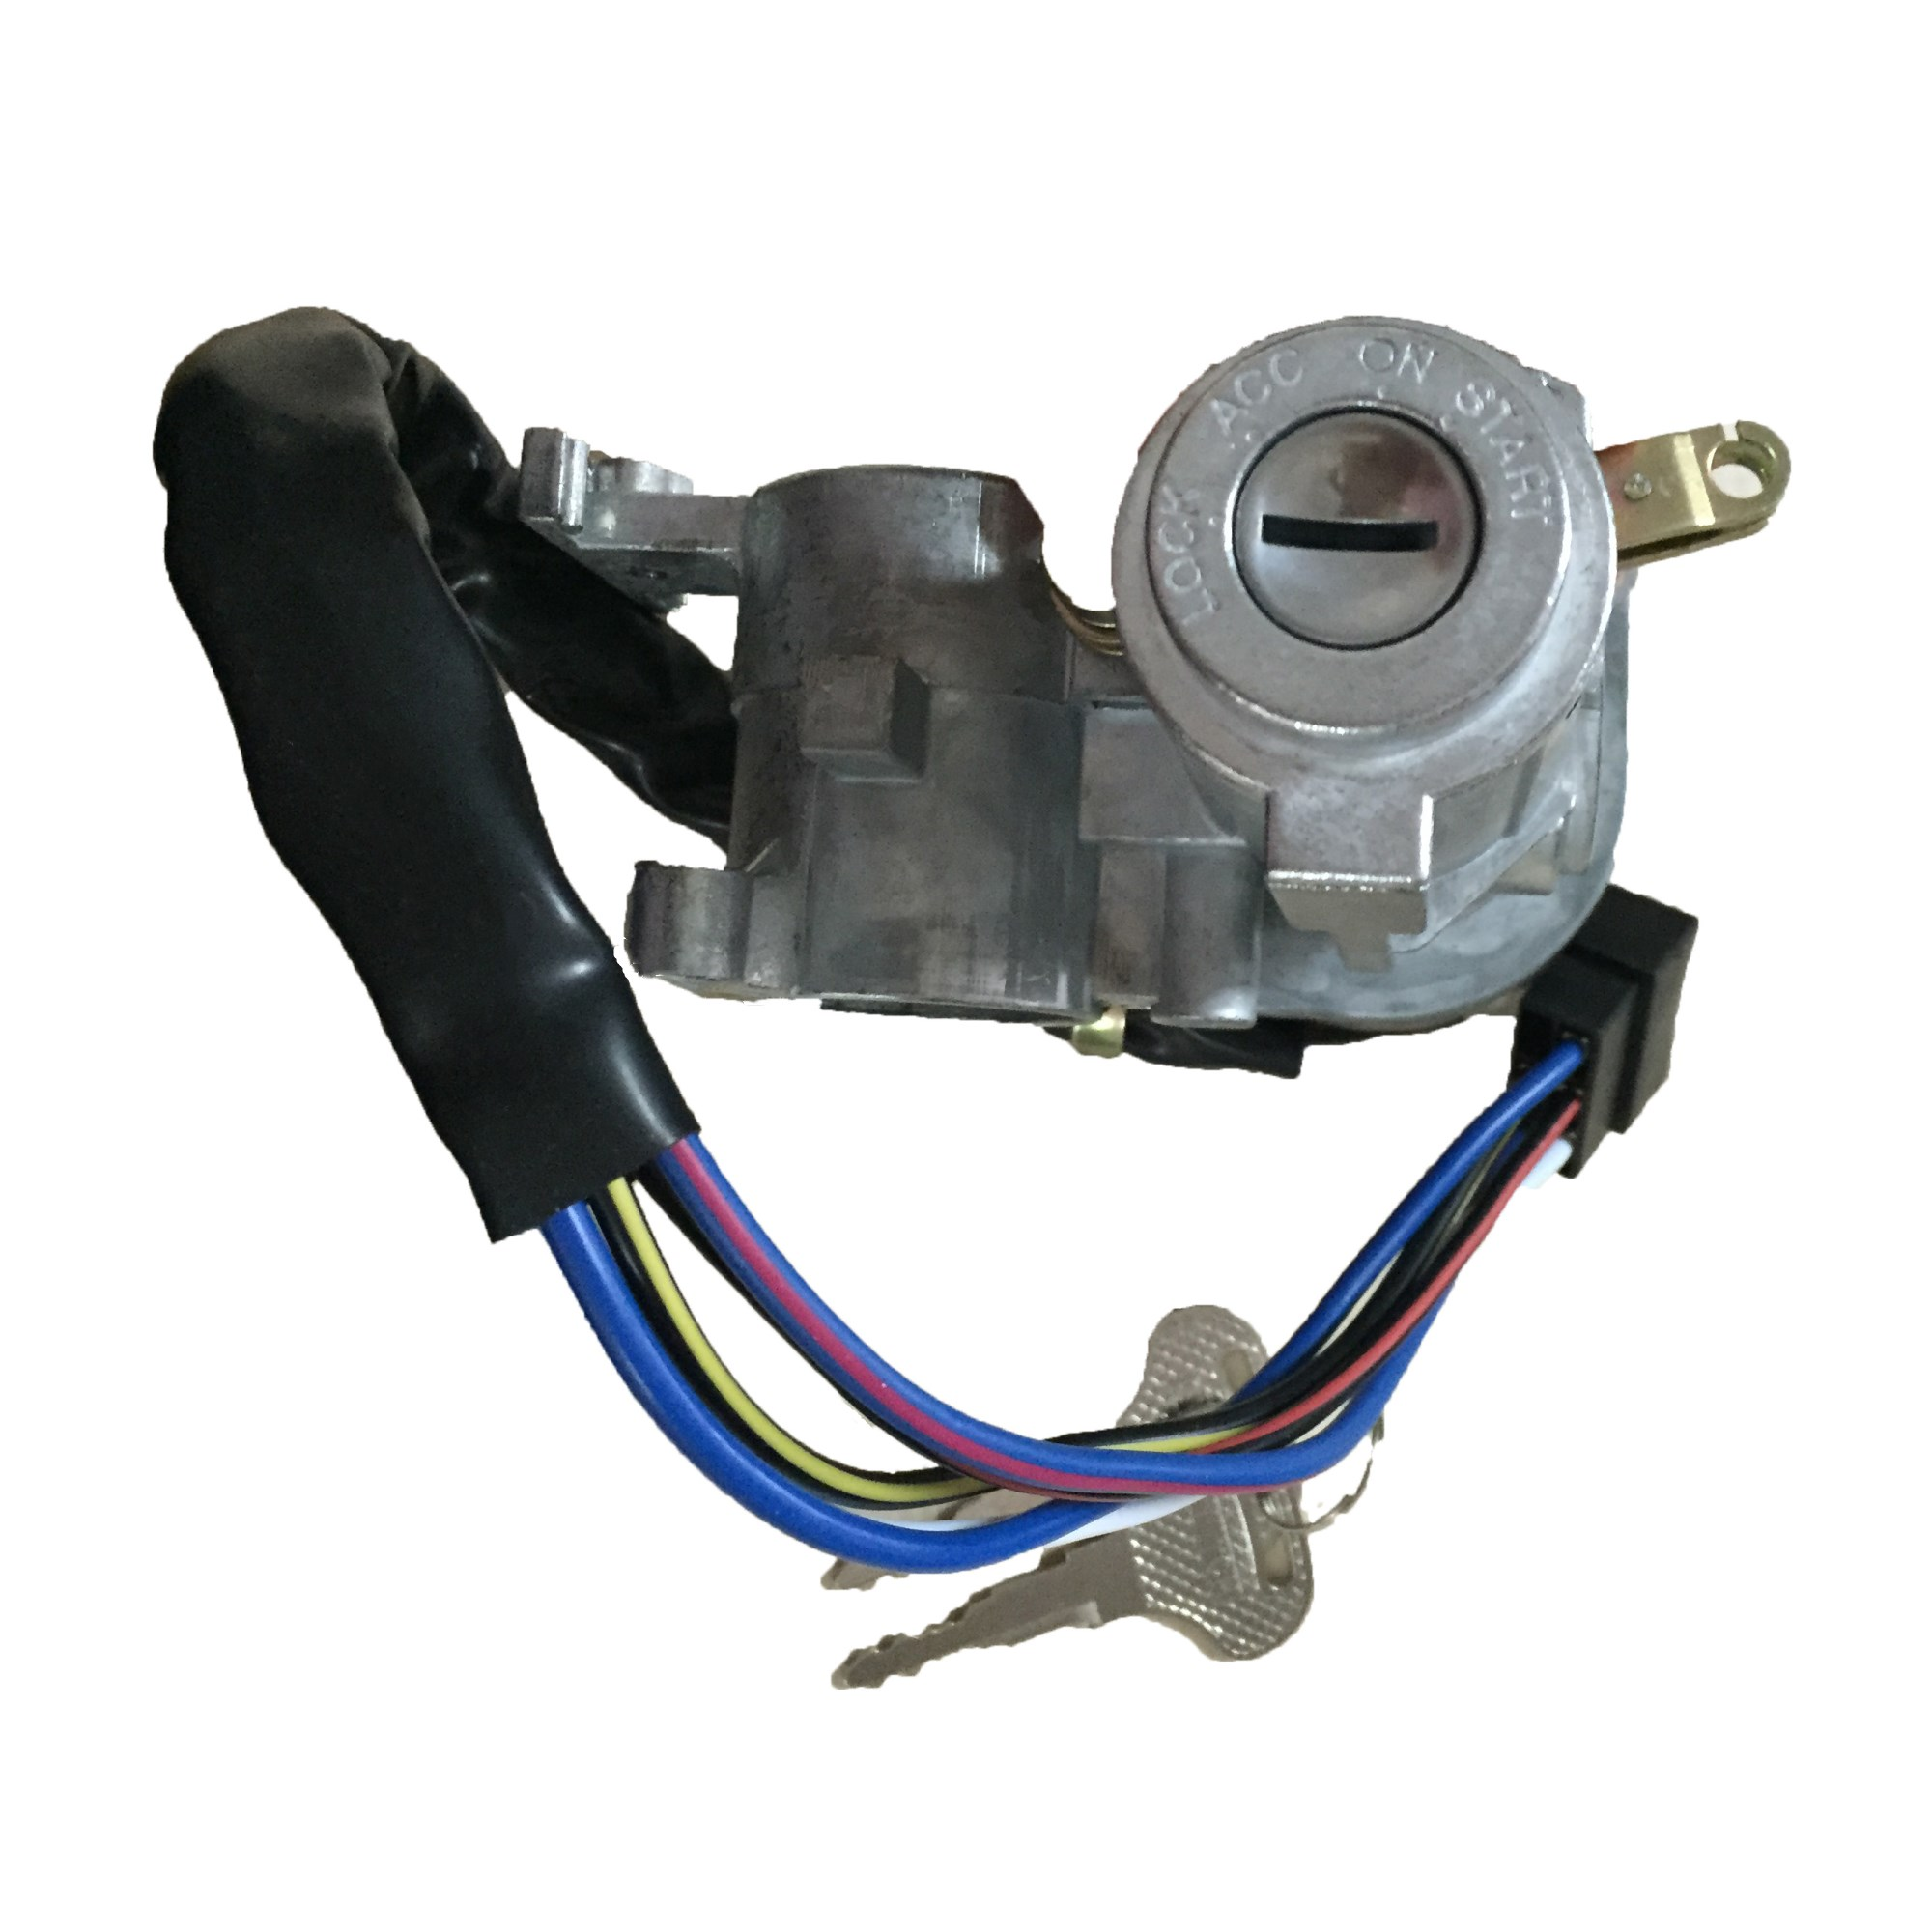 ignition starter switch for mitsubishi canter fe114 111 5p wire mb098733 in car switches relays from automobiles motorcycles on aliexpress com alibaba  [ 2000 x 2000 Pixel ]